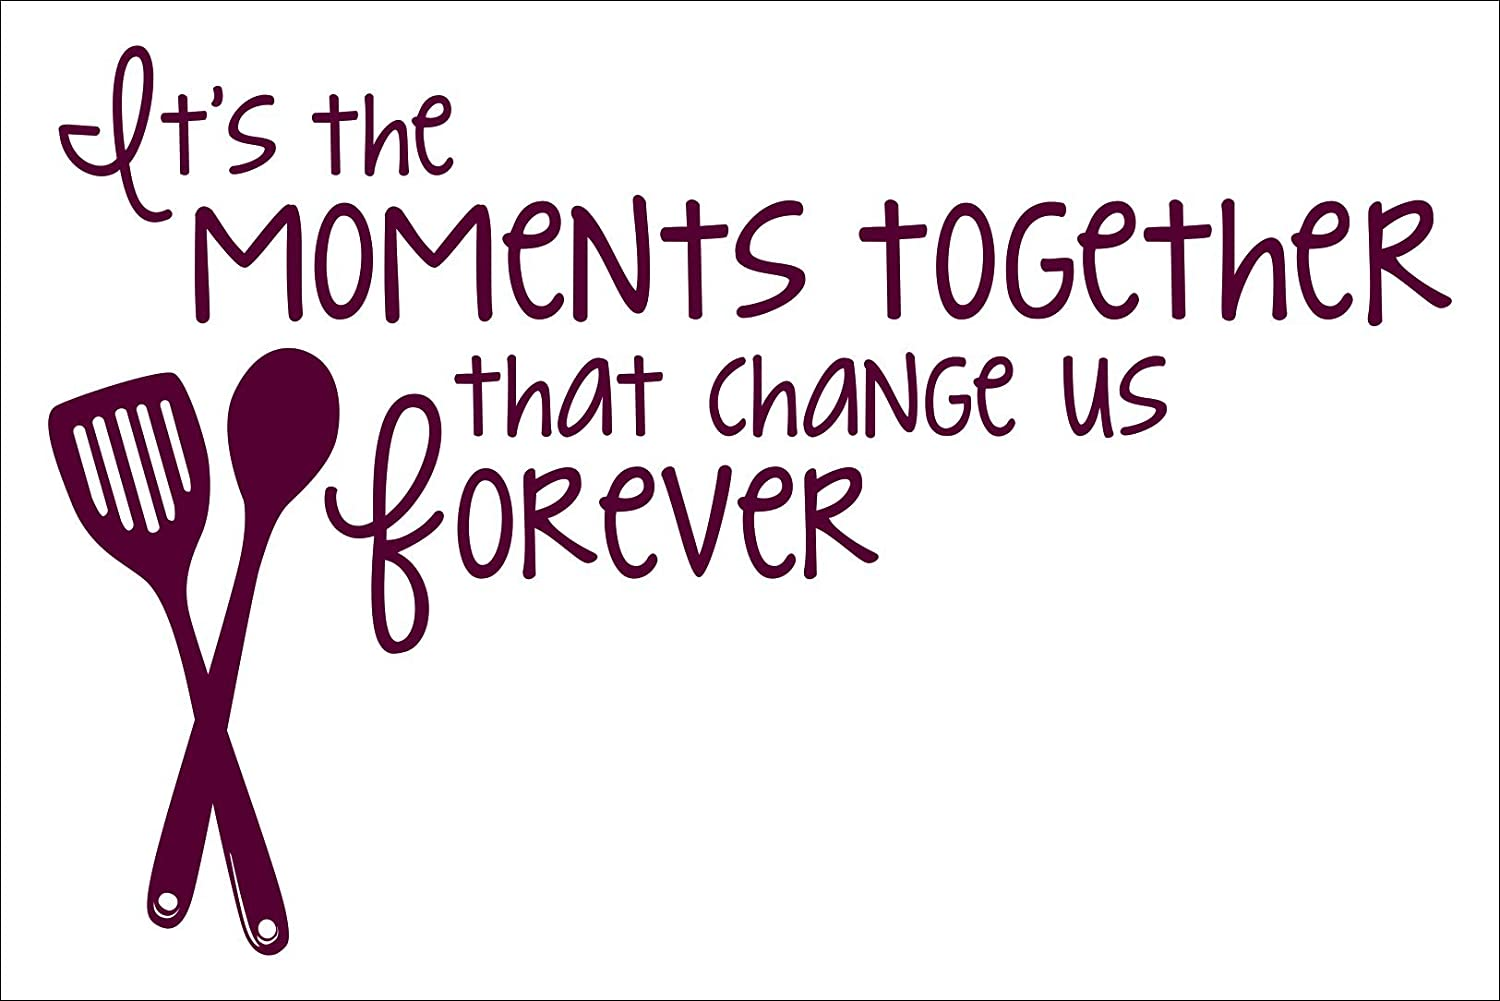 Wall Decor Plus More WDPM3677 Its The Moments Together Family Saying for The Kitchen Vinyl Wall D/écor Stickers Burgundy 23 x 15